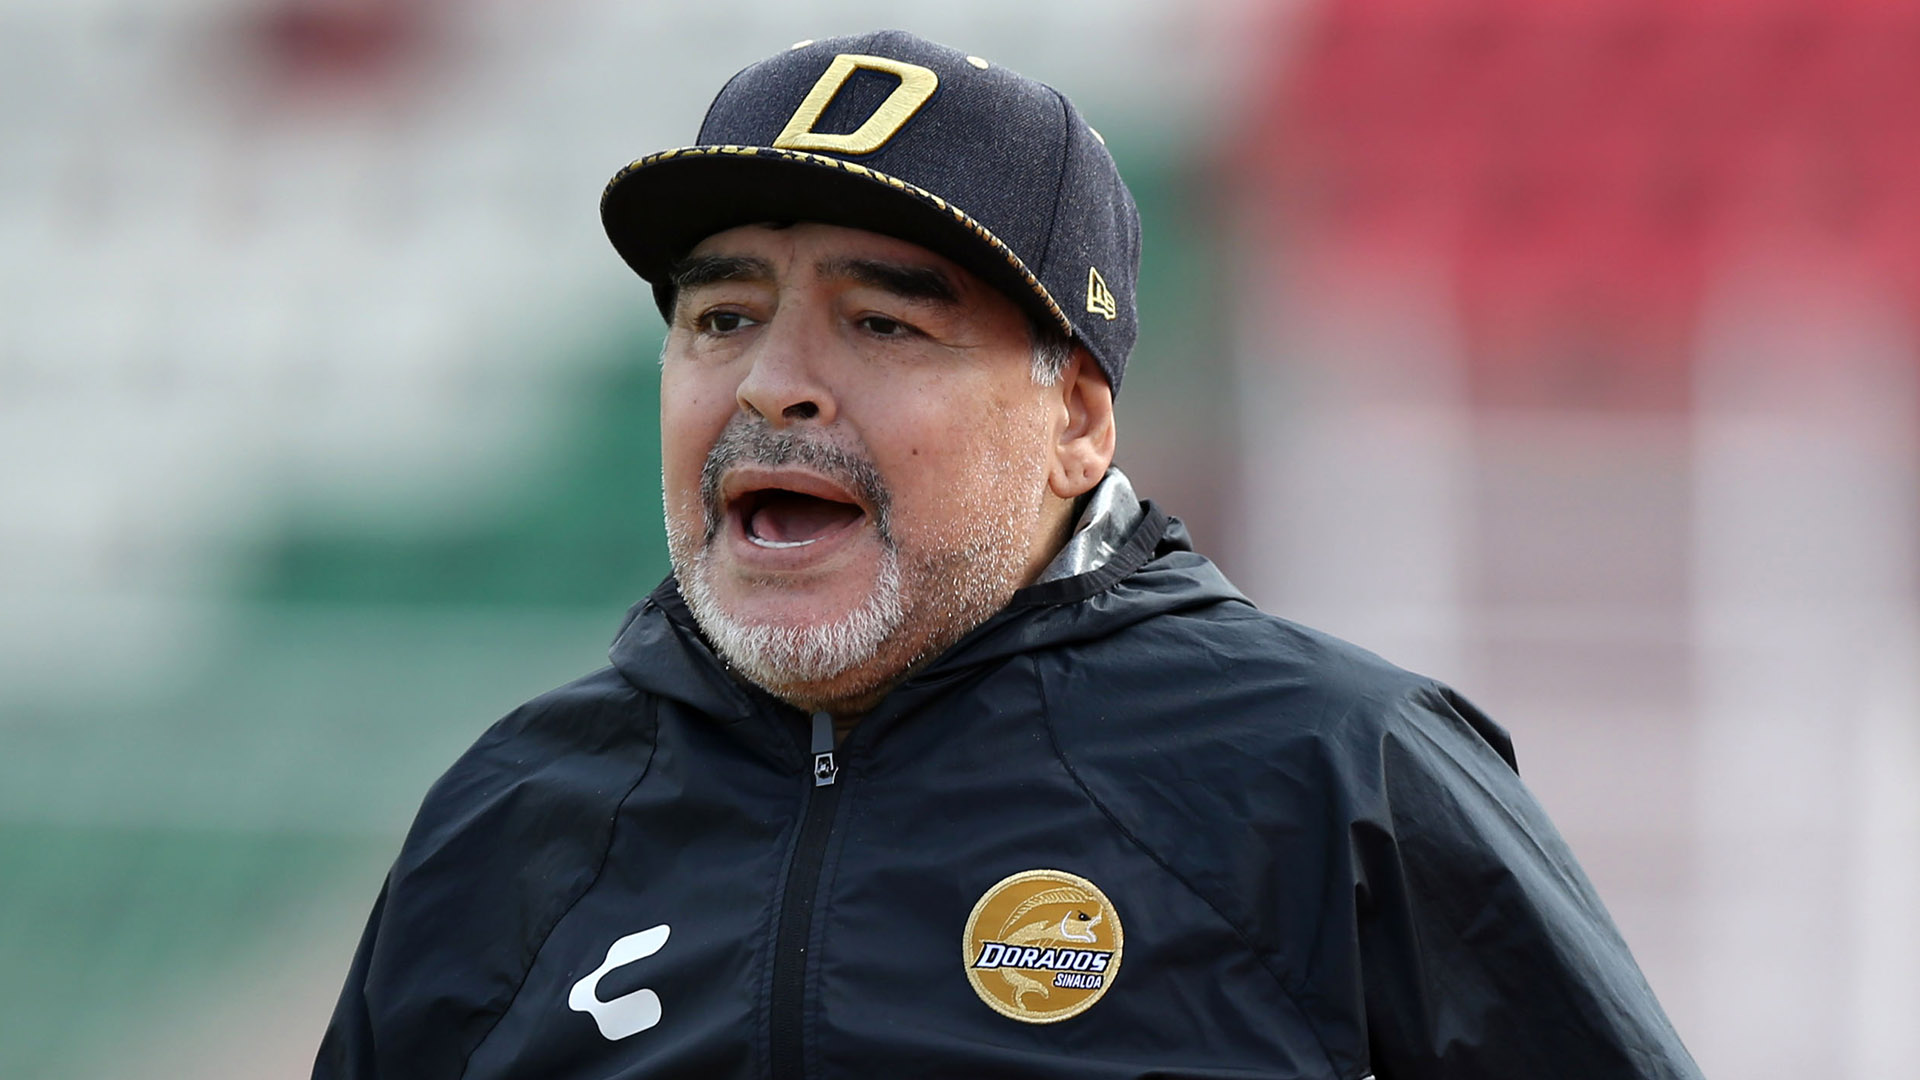 Martino wishes Maradona luck - but not too much - at Gimnasia